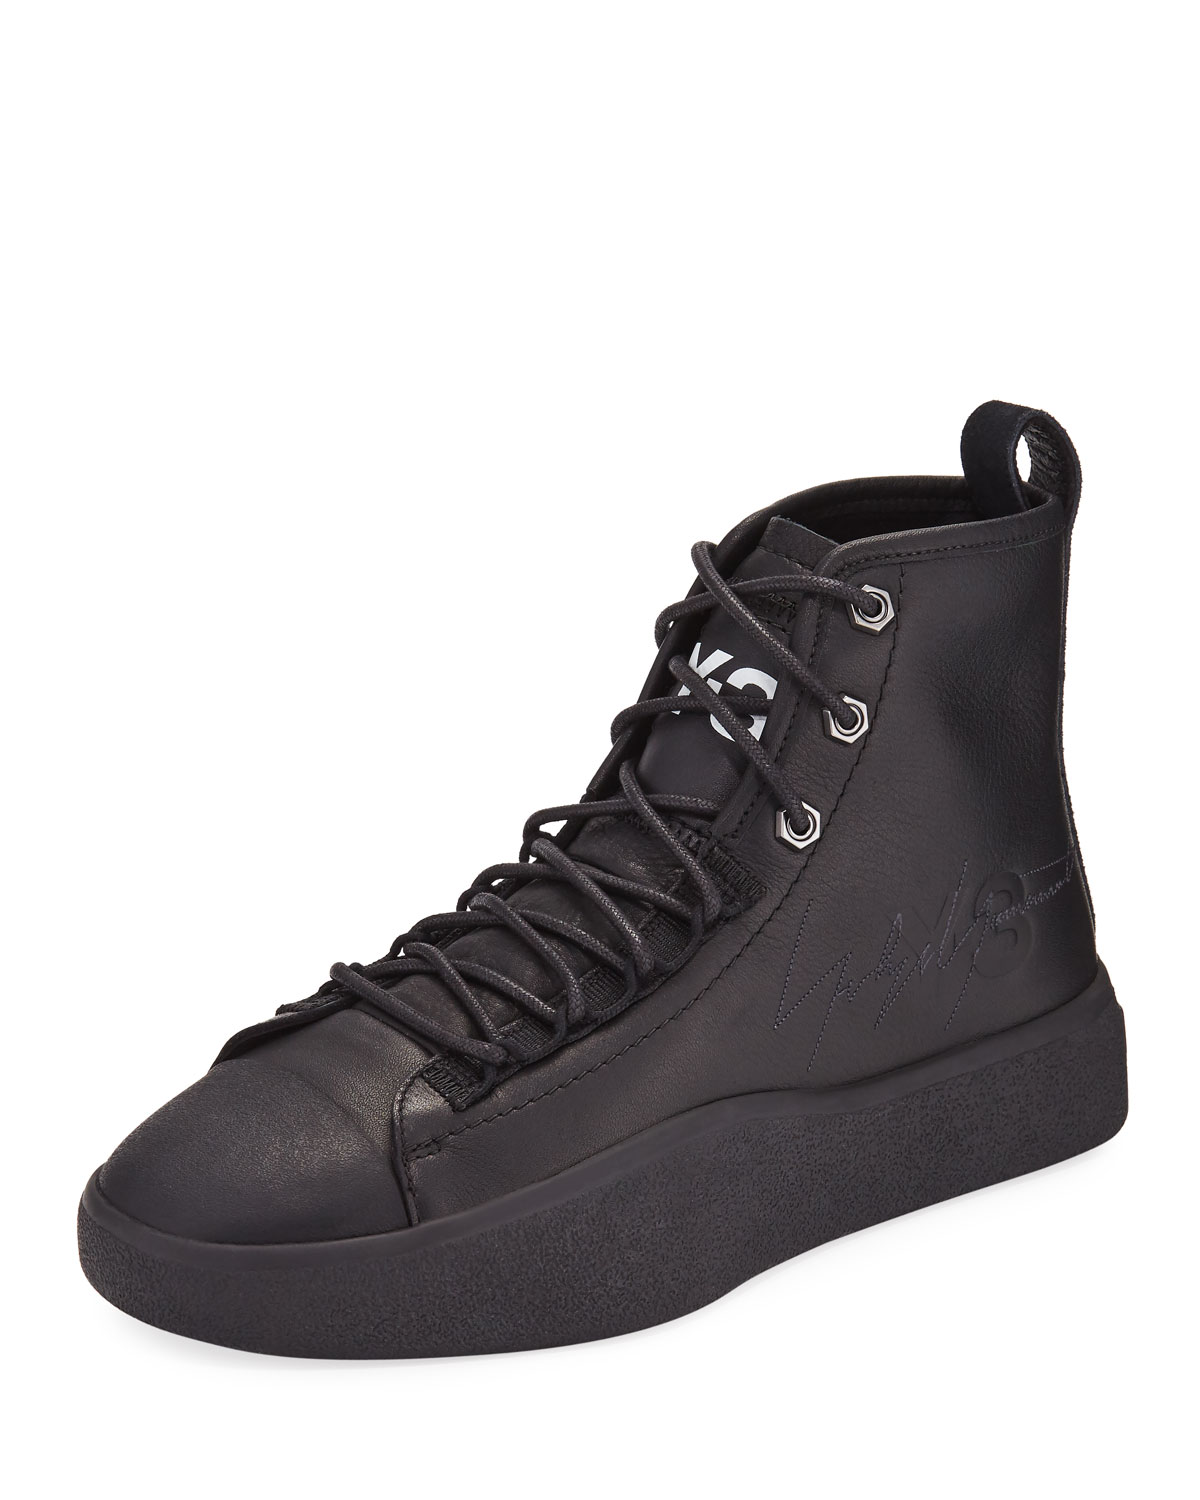 3dcd23d0a3f9 Y-3 Men s Bashyo Leather High-Top Sneakers